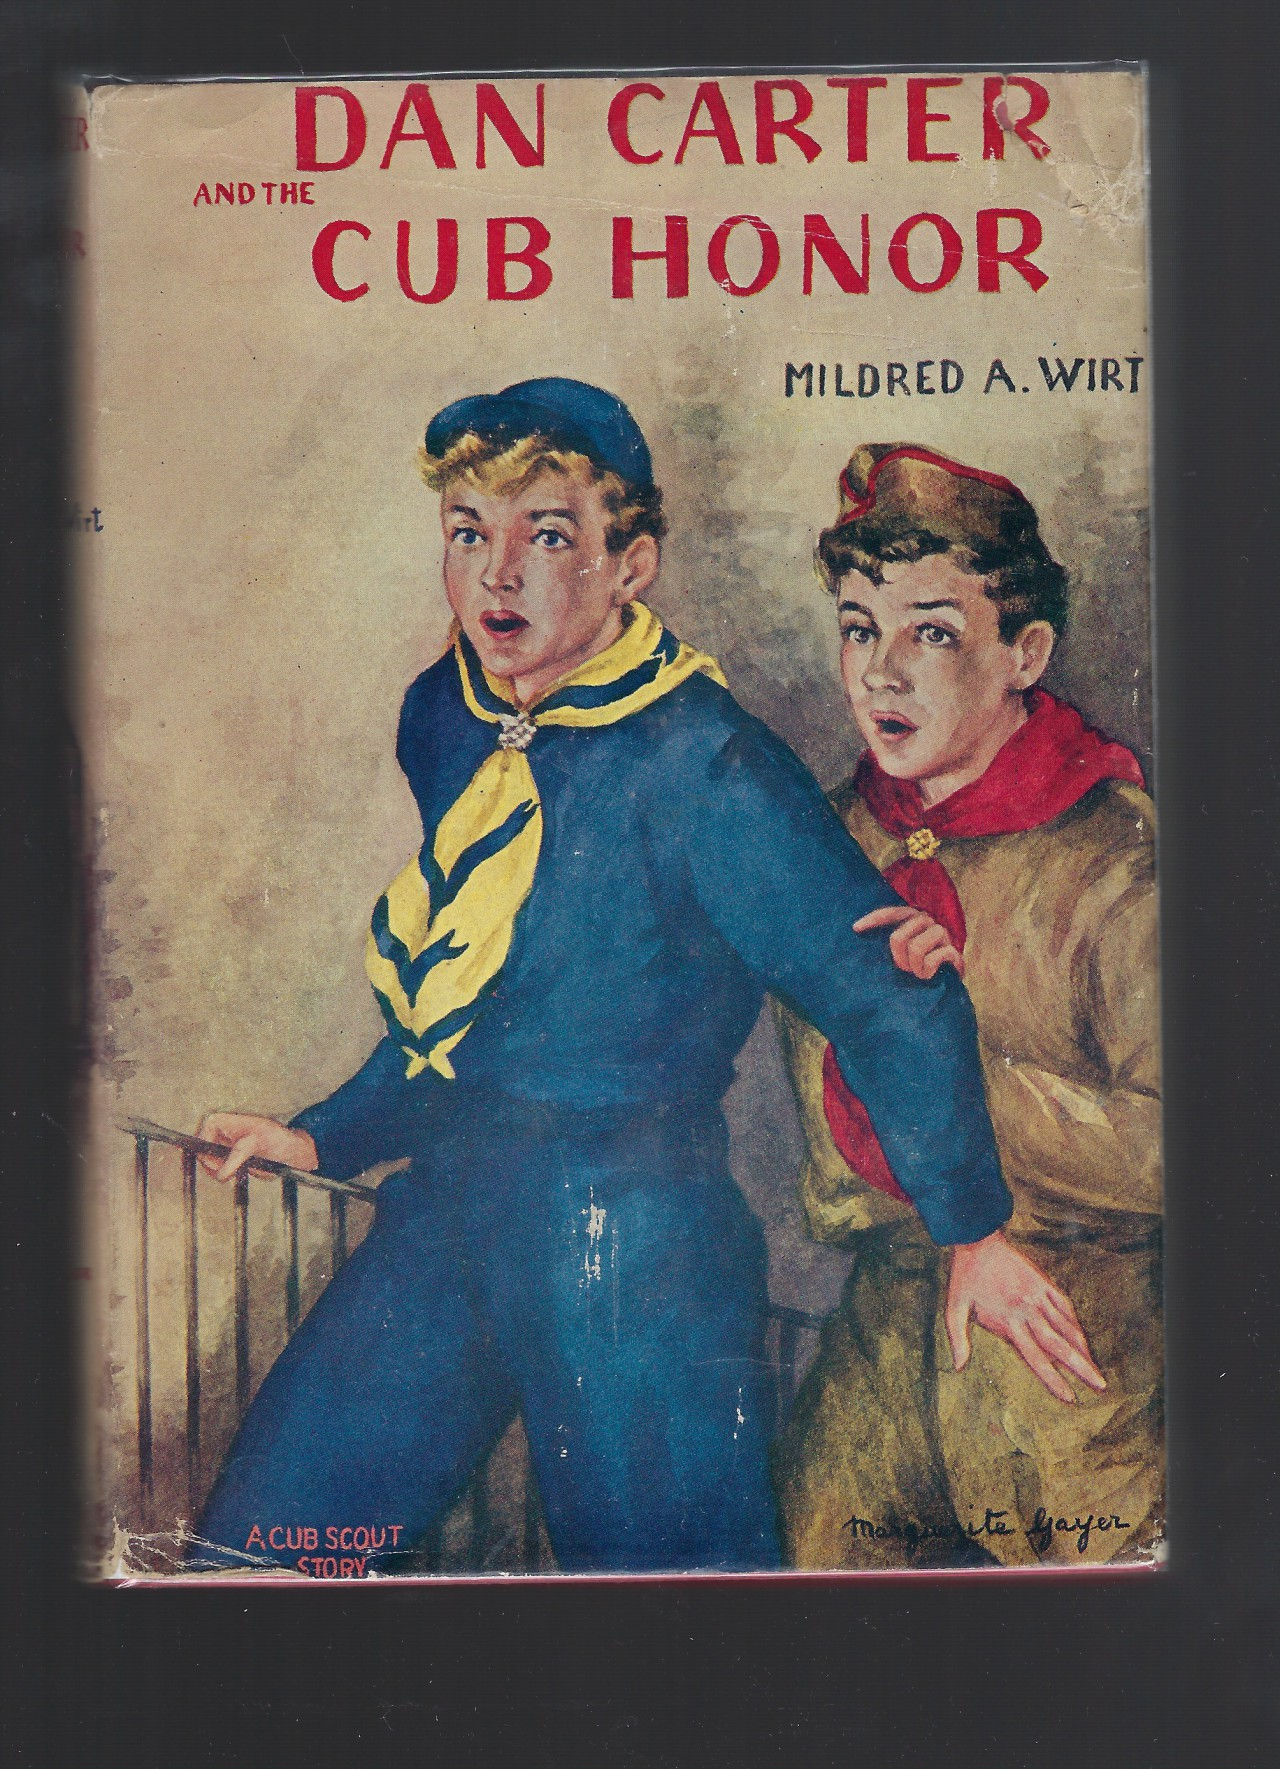 Dan Carter and the Cub Honor #6 HB/DJ Mildred Wirt Nancy Drew Author, Mildred A. Wirt